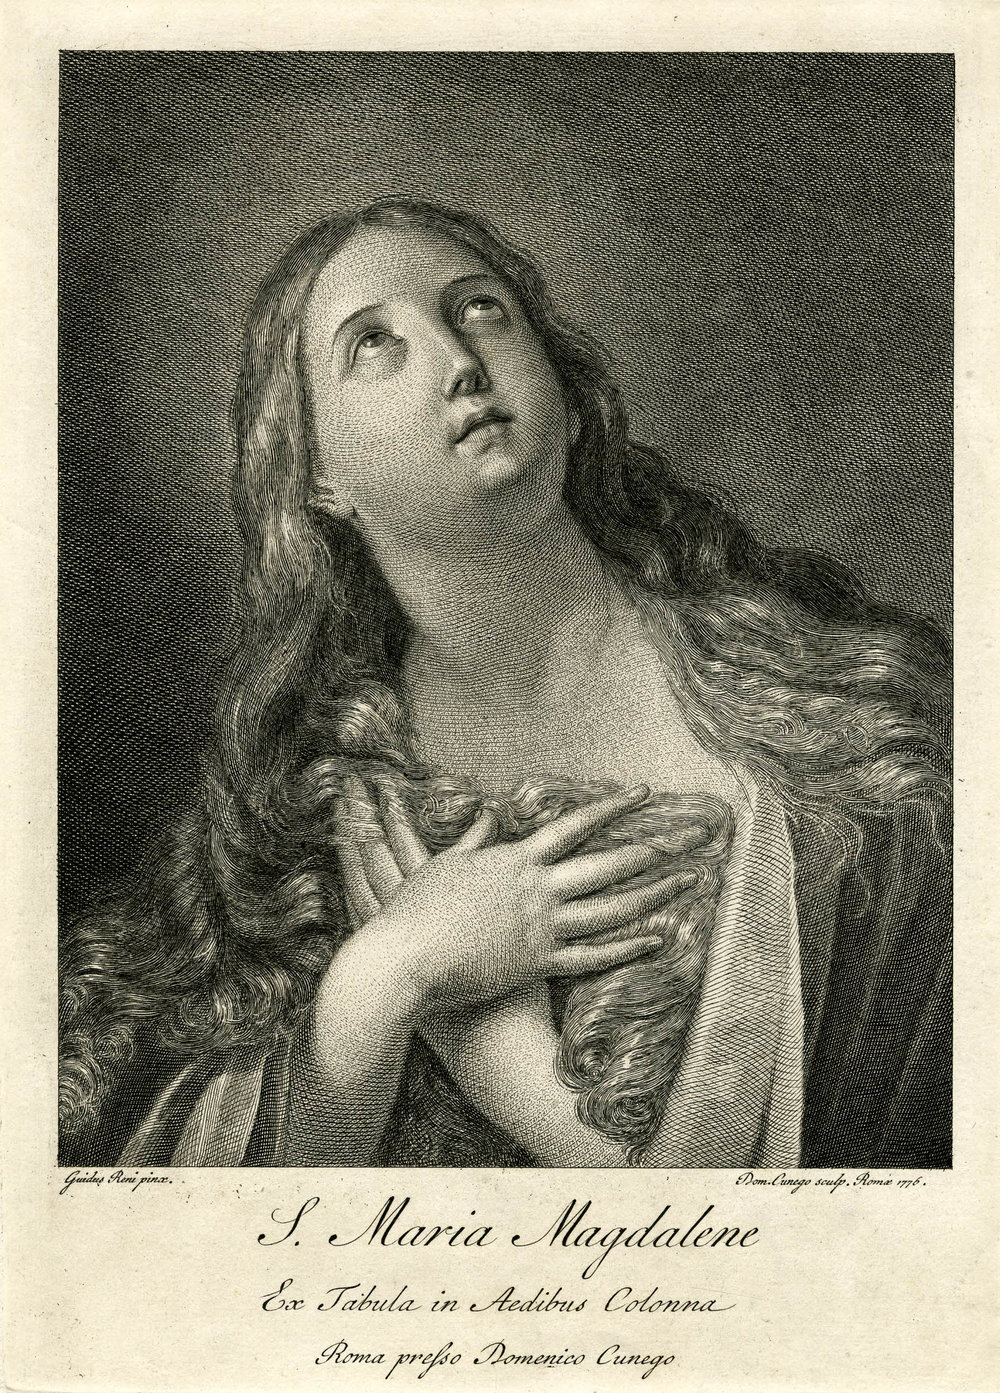 Domenico Cunego print after Guido Reni, Mary Magdalene, Colonna Gallery